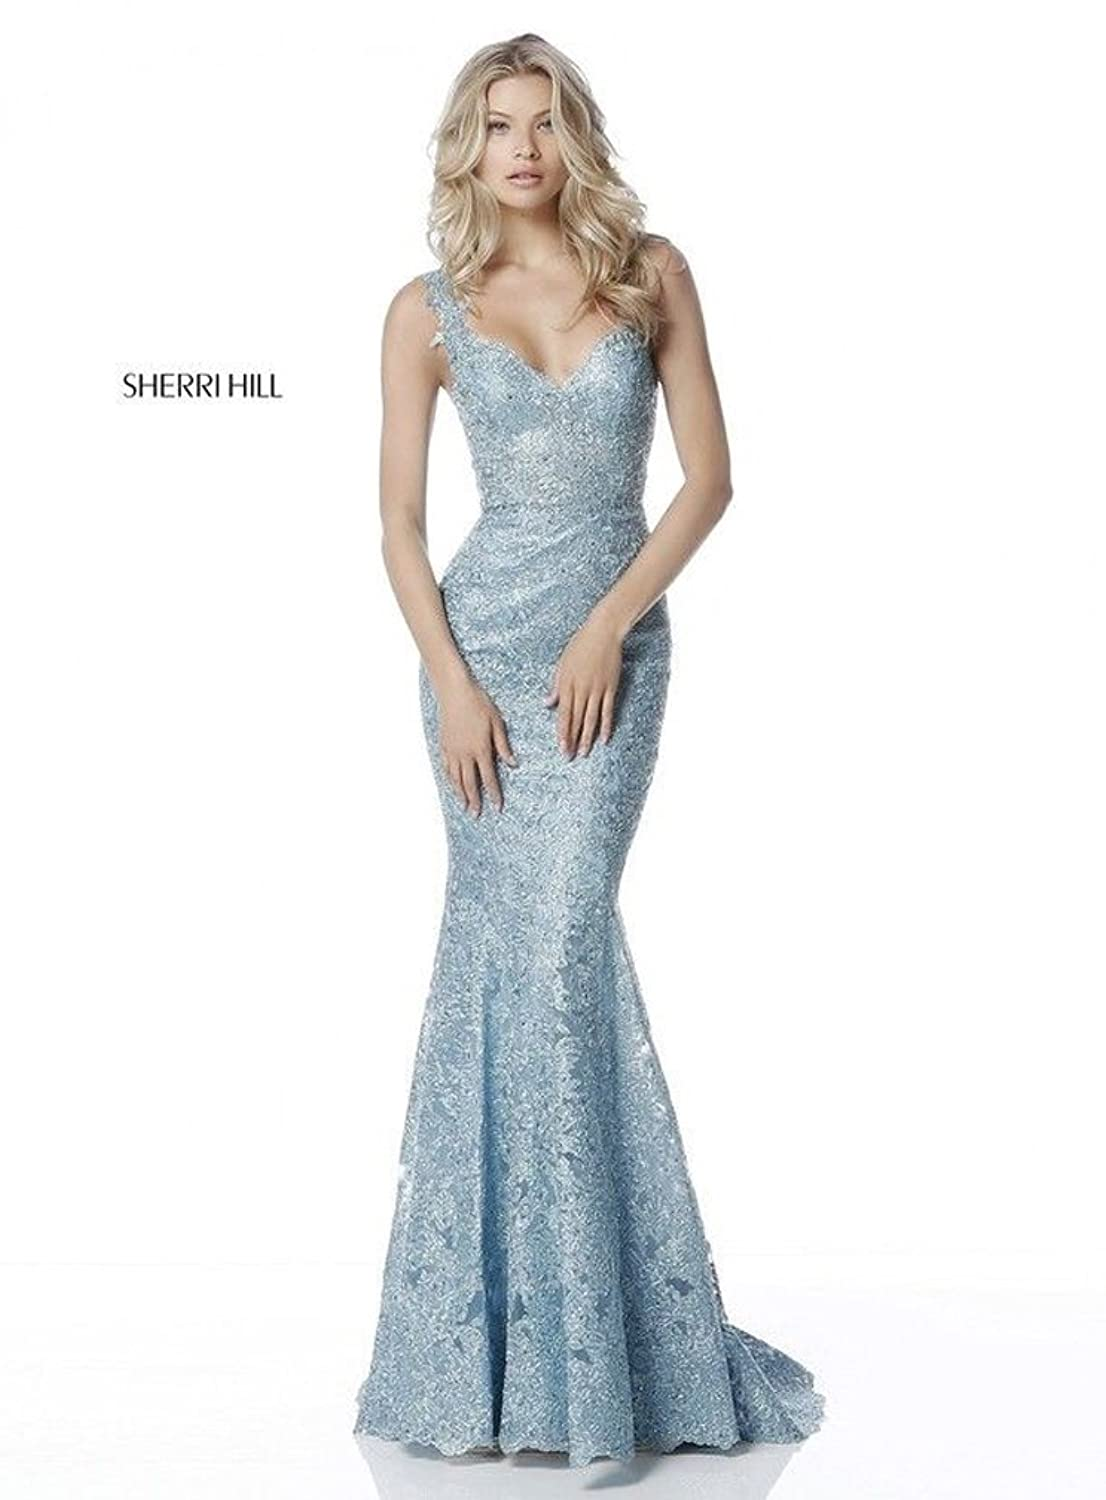 Sherri Hill Spring 2018 Evening Prom Gown 51571 Size 4 at Amazon Womens Clothing store: